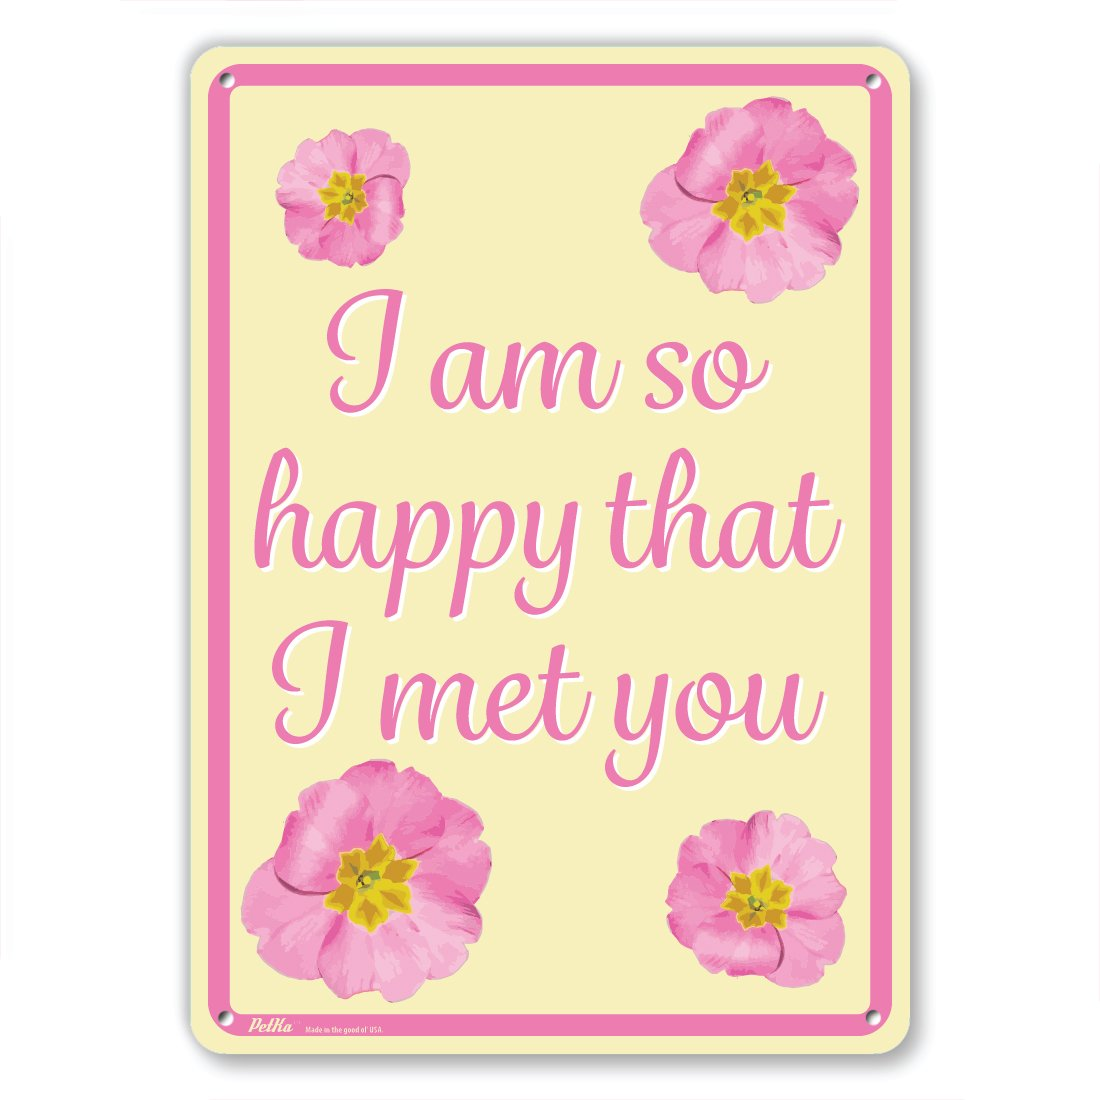 10 x 14 PetKa Signs and Graphics PKFW-0002-NA/_10x14I am so happy that I met you Aluminum Sign Pink Flowers on Yellow